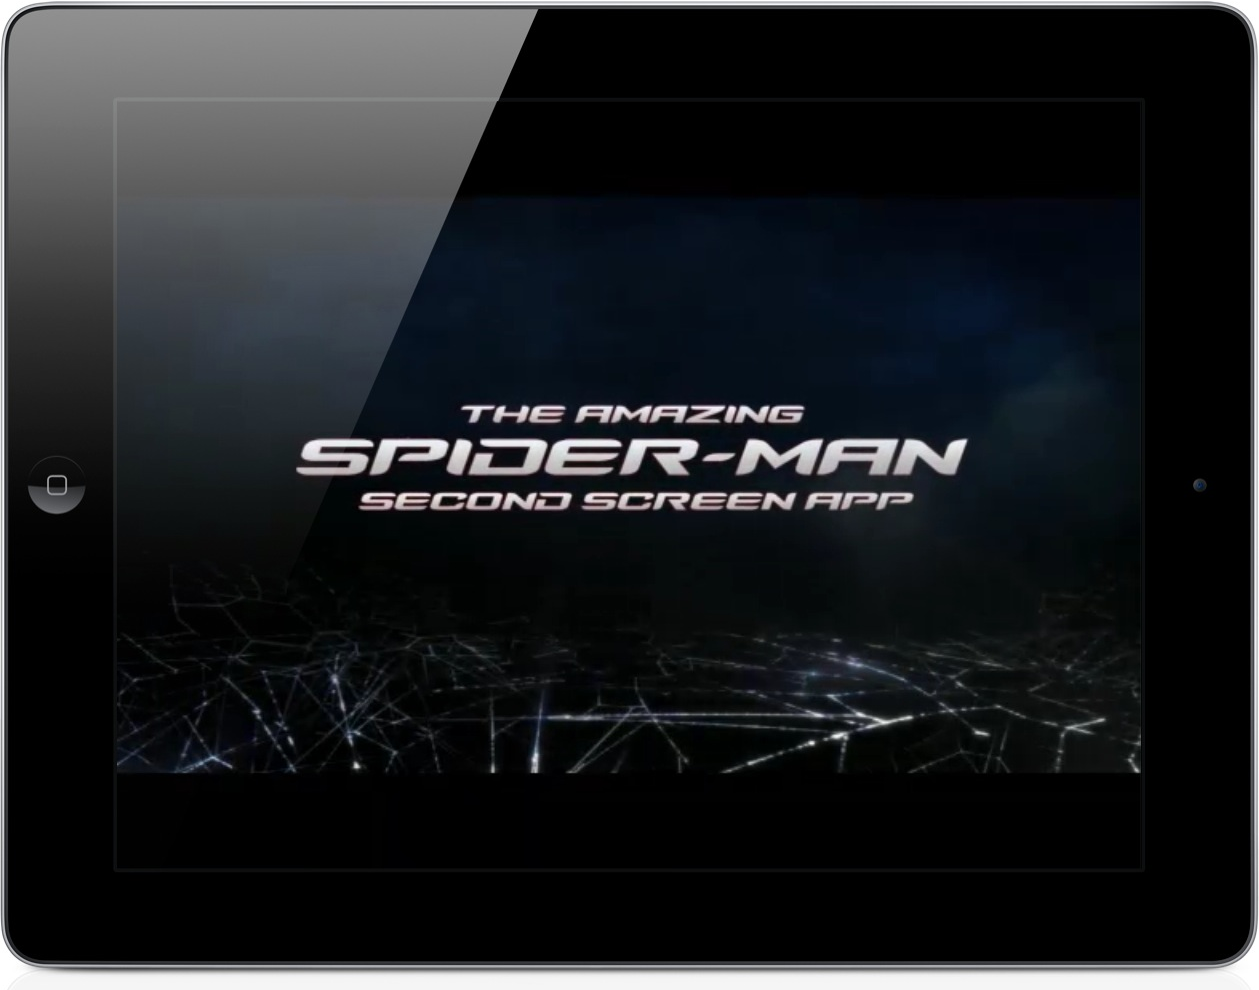 Join The Web With The Amazing Spider-Man Second Screen App For iPad